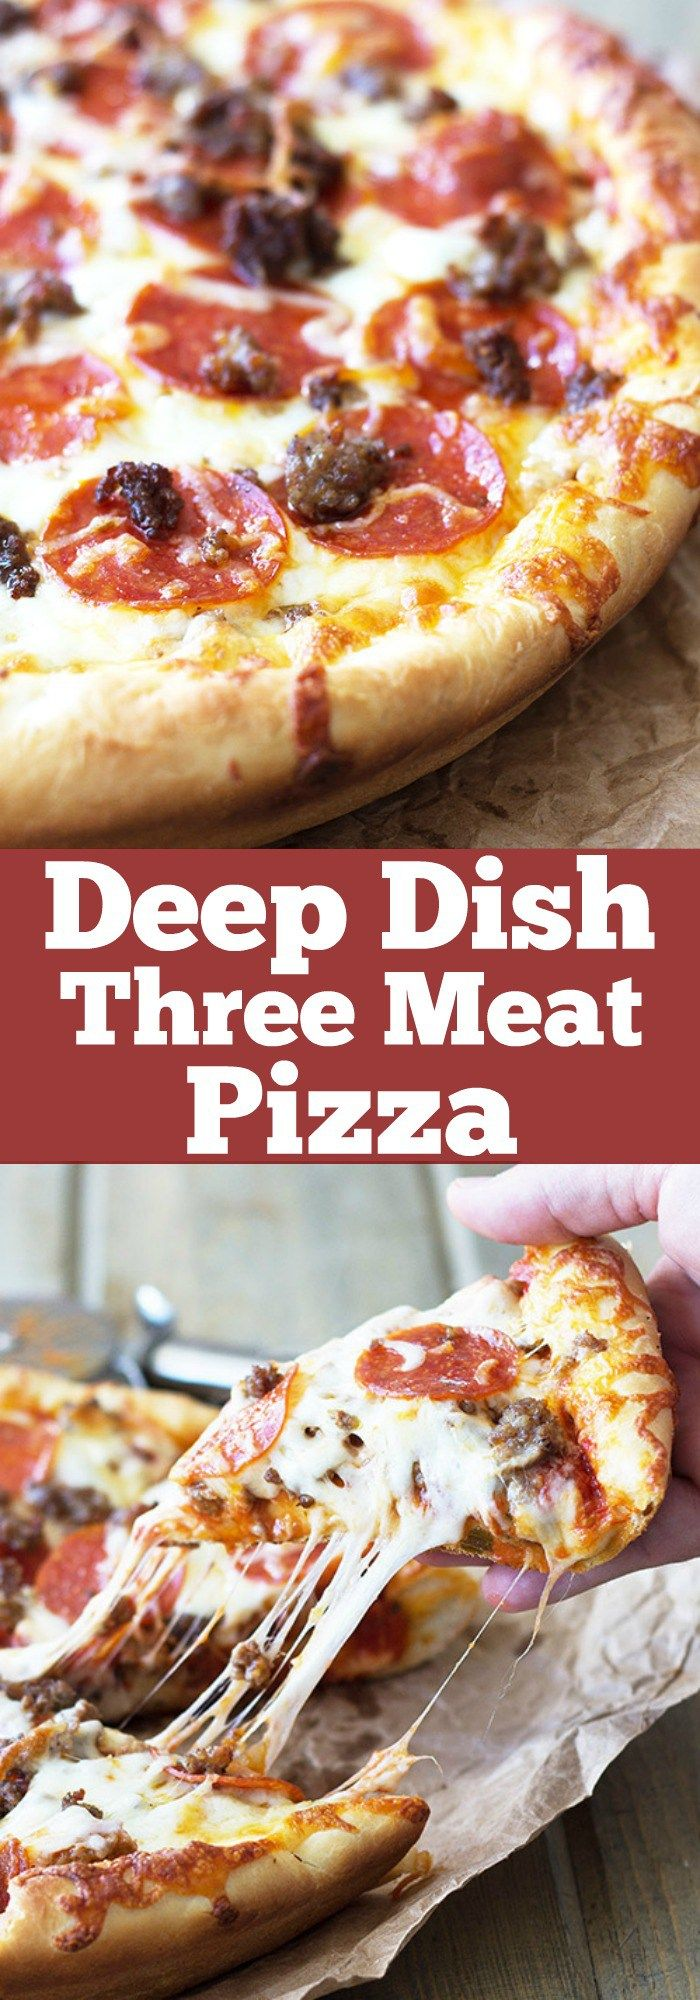 Deep Dish Three Meat Pizza -thick crust, sauce, three kinds of meat and lots of cheese!!! Need I say more?!?!   countrysidecravings.com